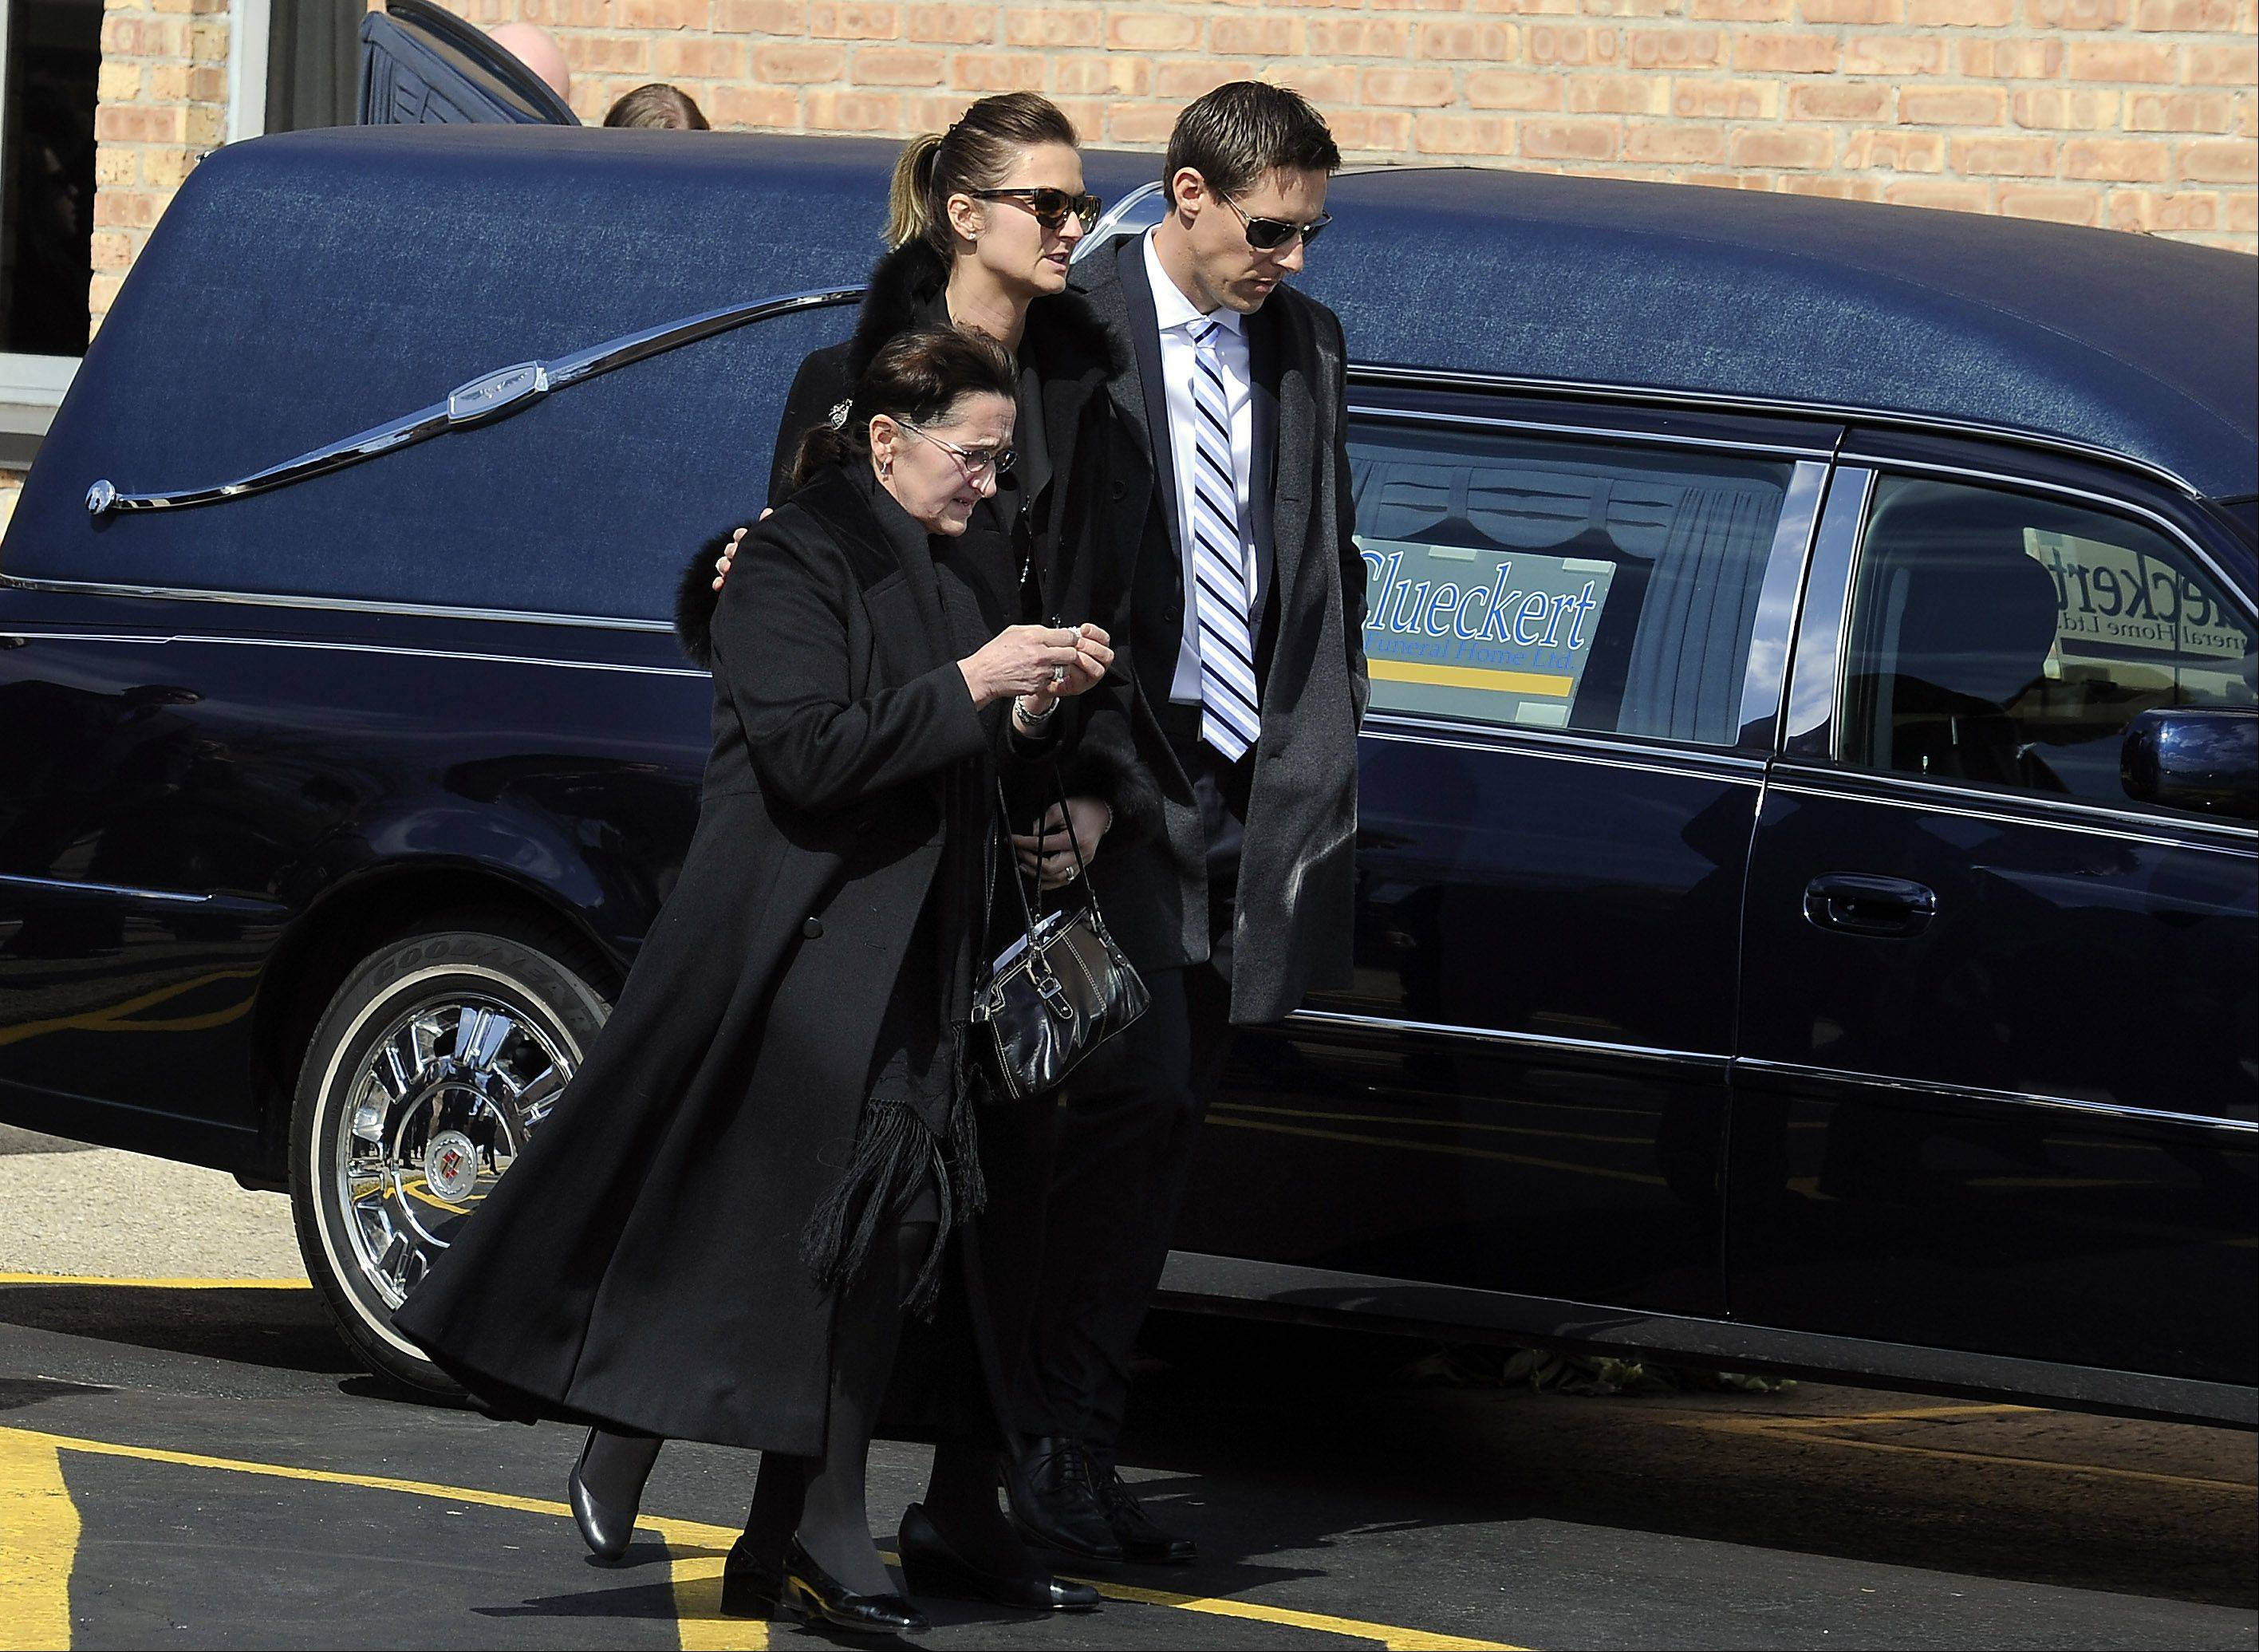 Barbara Komosa, mother of Rob Komosa, and other family members make their way to the cemetery after she attended his funeral service at St. Thomas Becket Church in Mount Prospect on Saturday.